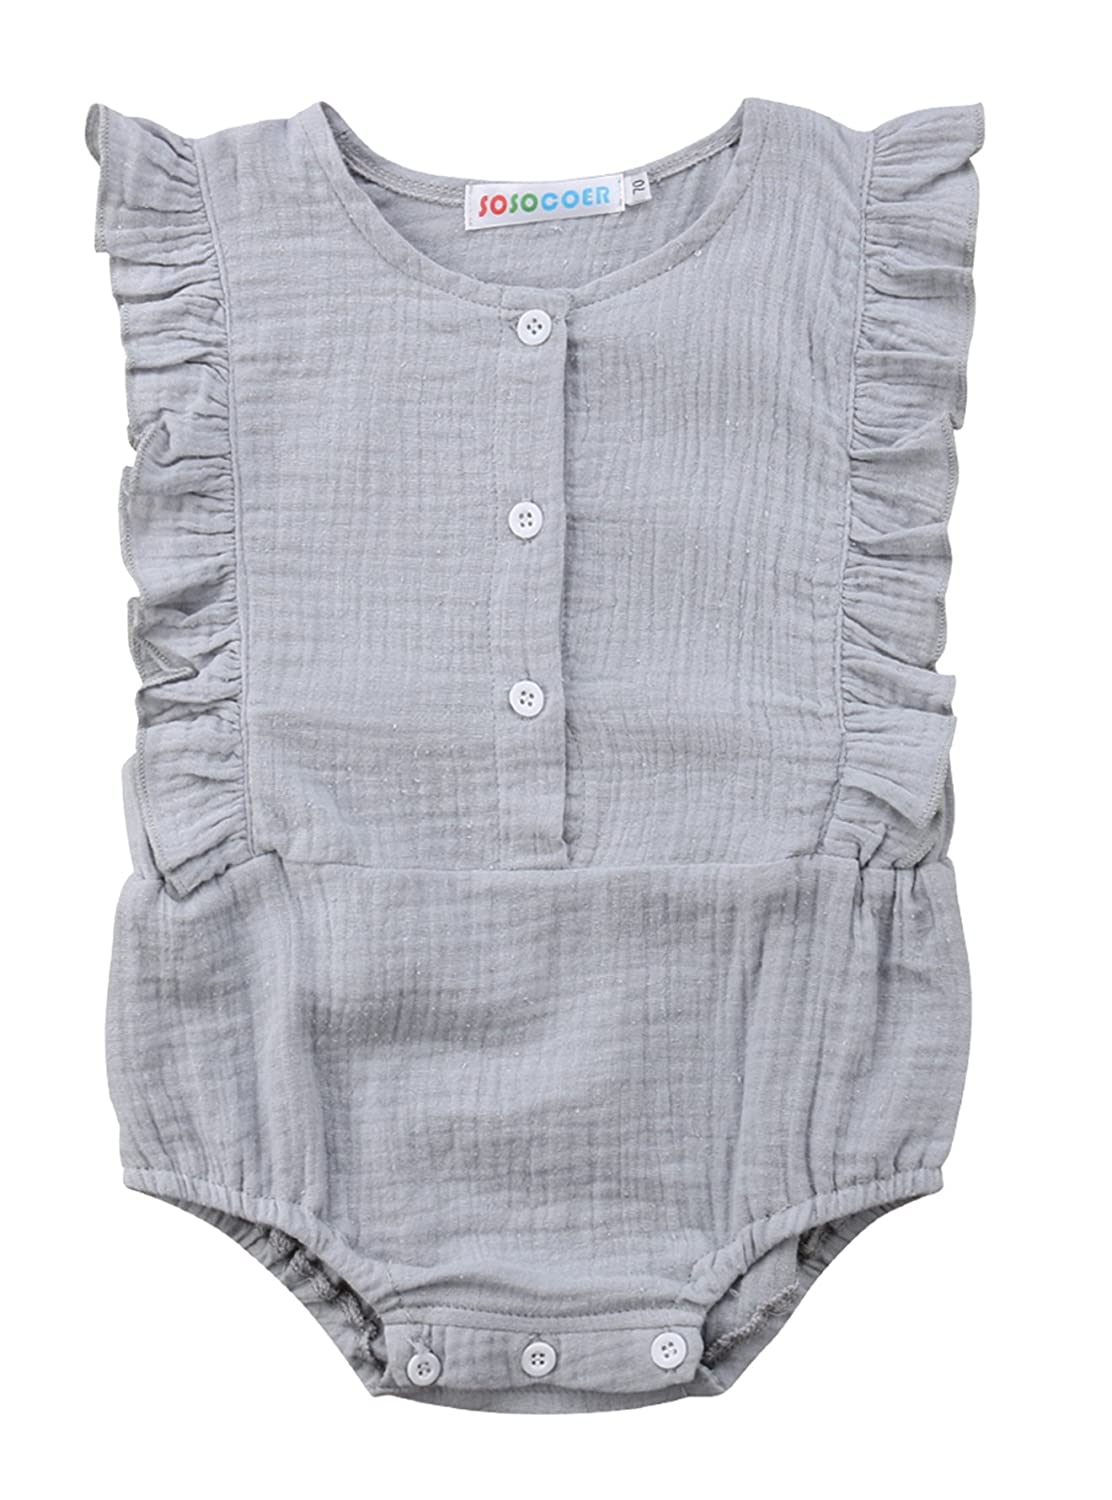 184df8f5a2e Amazon.com  Urkutoba Infant Girls Clothes Baby Girl Ruffles Romper Lace  Sleeveless Outfit Grey Bodysuit Clothes  Clothing